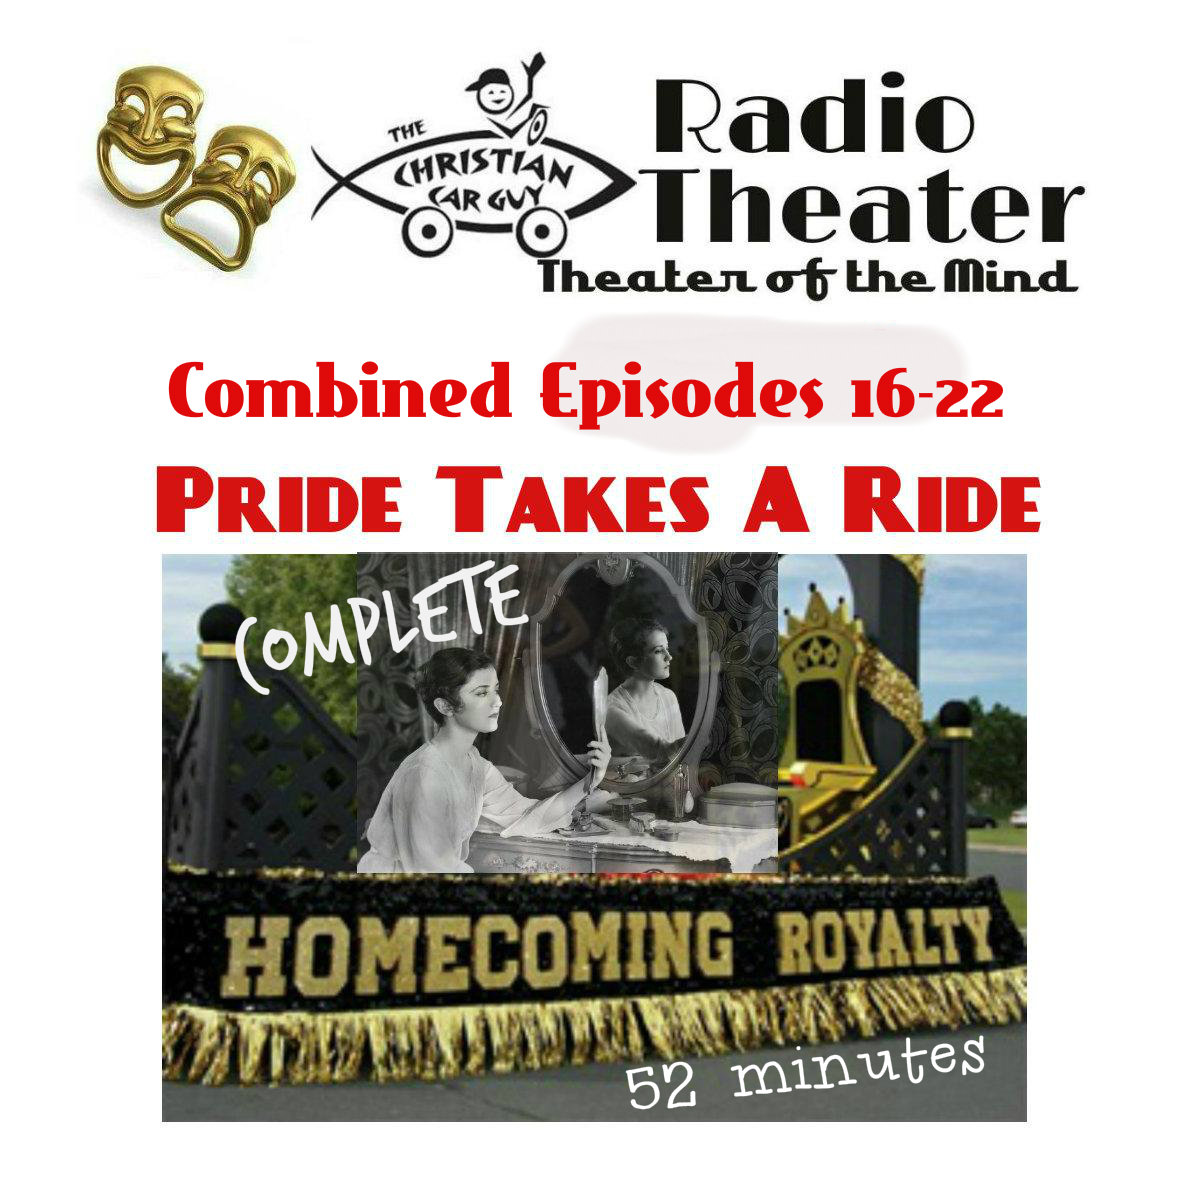 Pride Takes A Ride Complete Episodes 16-22 52 Mins